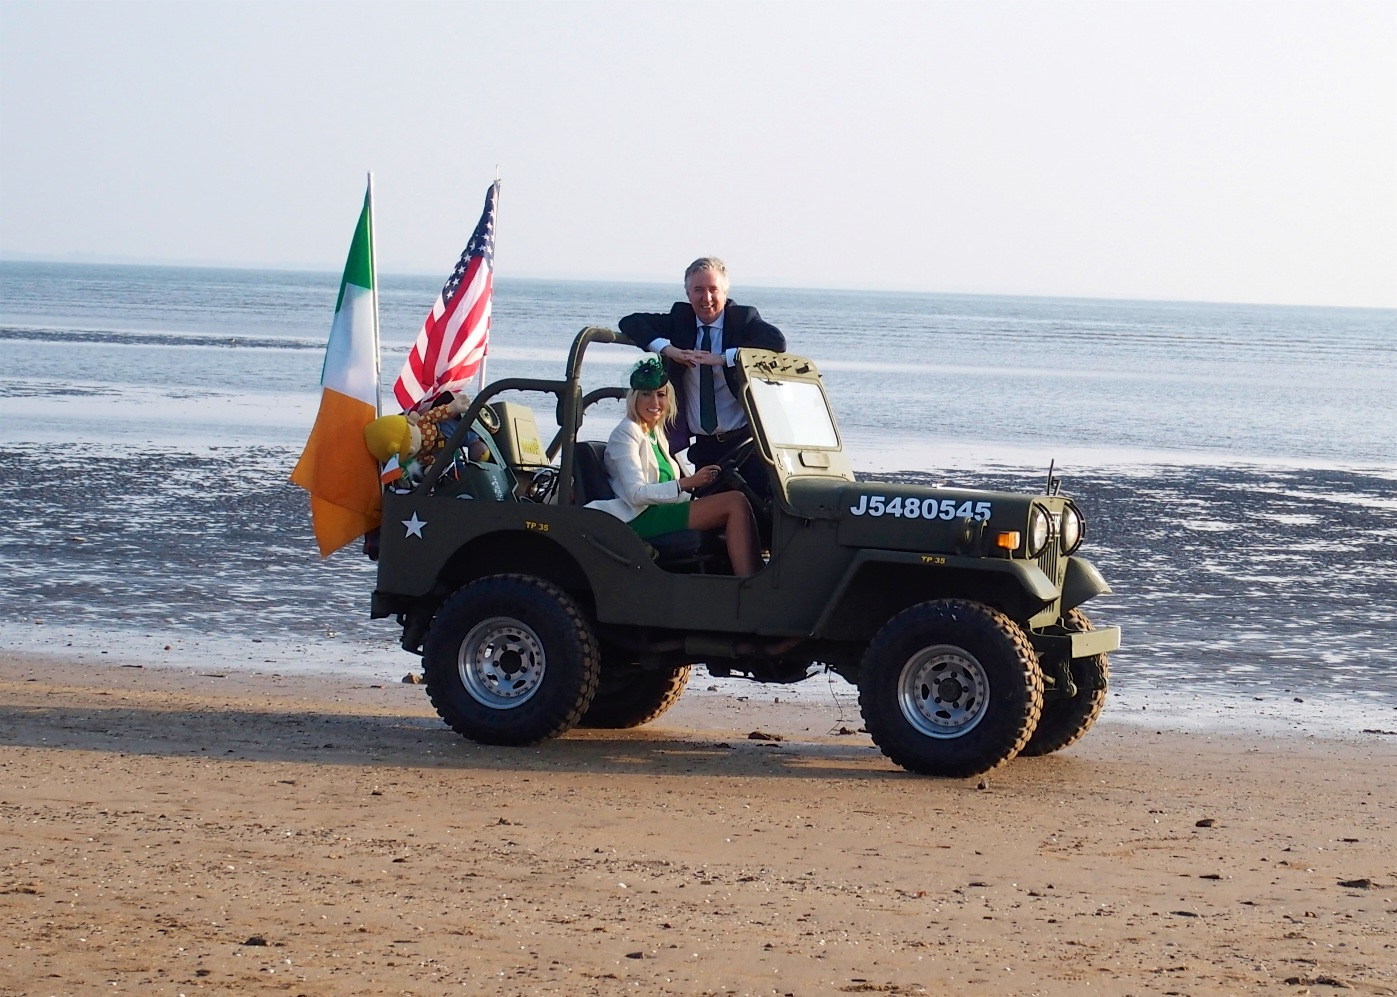 John Delaney and Emma English St. Patrick's Day parade, Duncannon, County Wexford